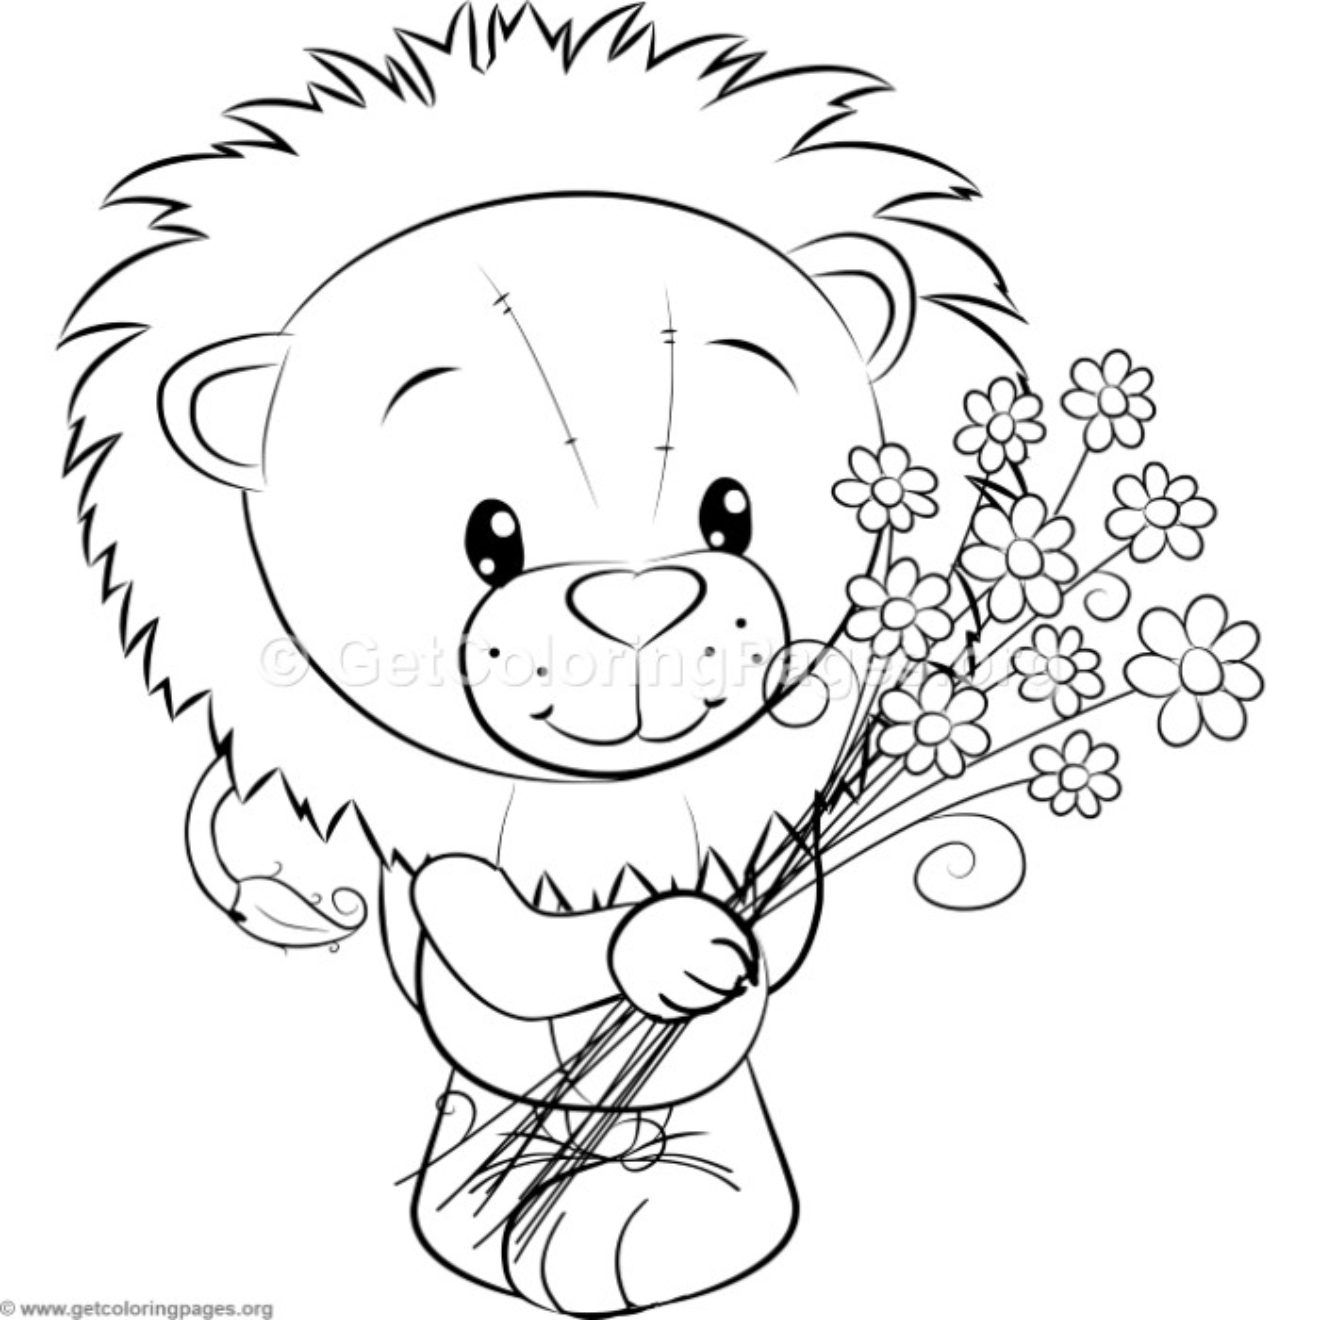 Little Lion 7 Coloring Pages Getcoloringpages Org Cute